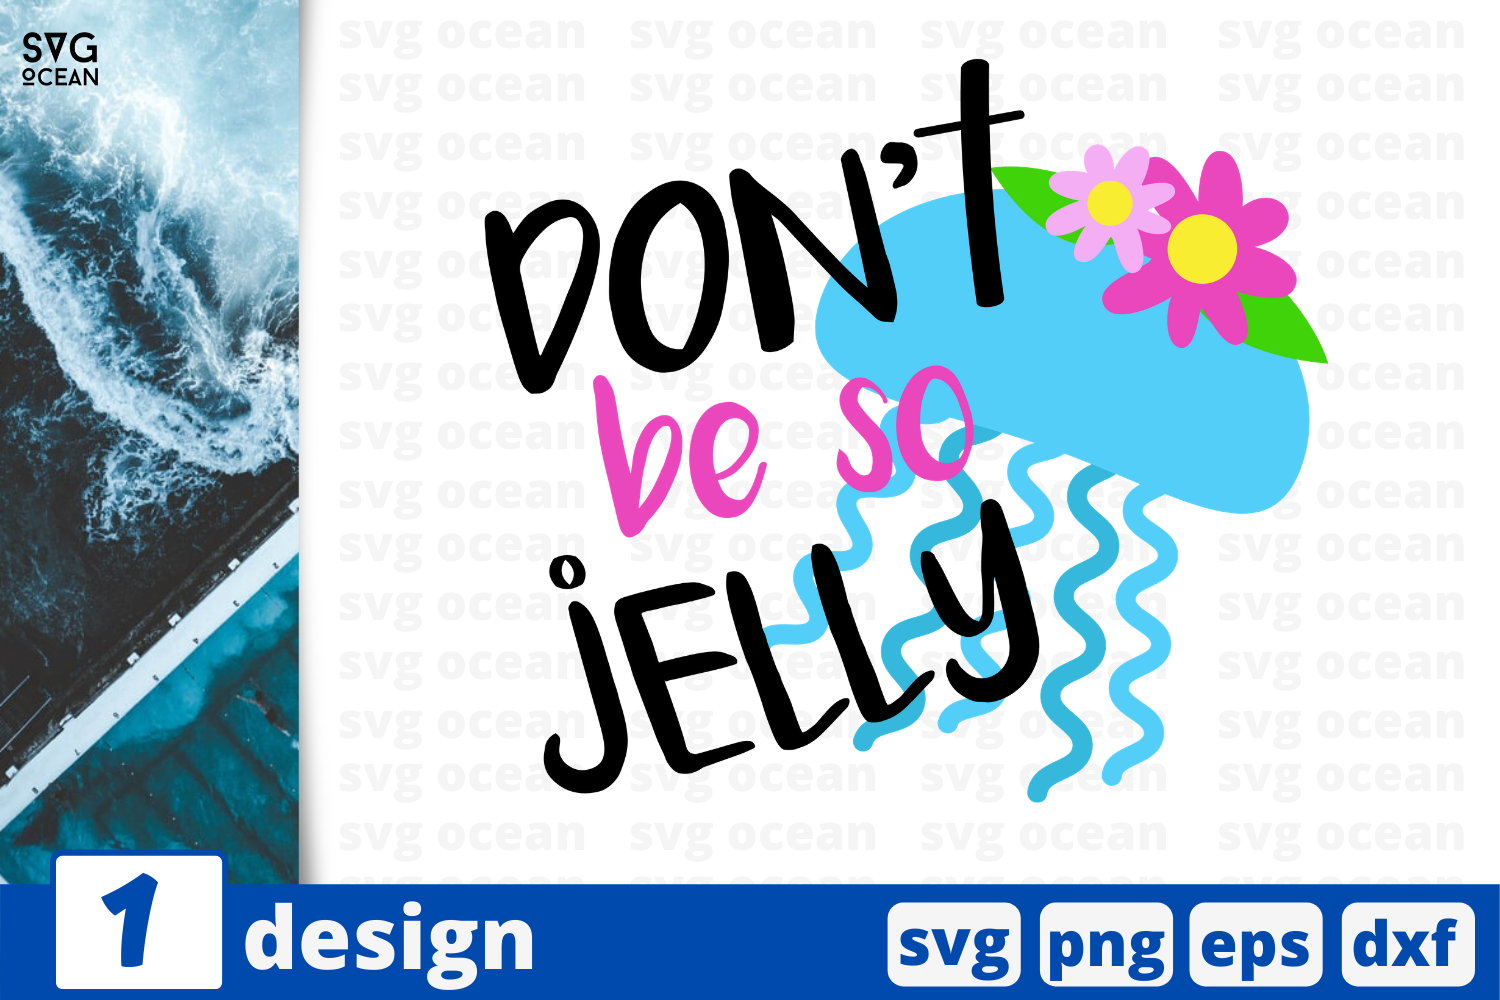 Download Free 1 Don T Be So Jelly Summer Svg Cricut Graphic By Svgocean for Cricut Explore, Silhouette and other cutting machines.